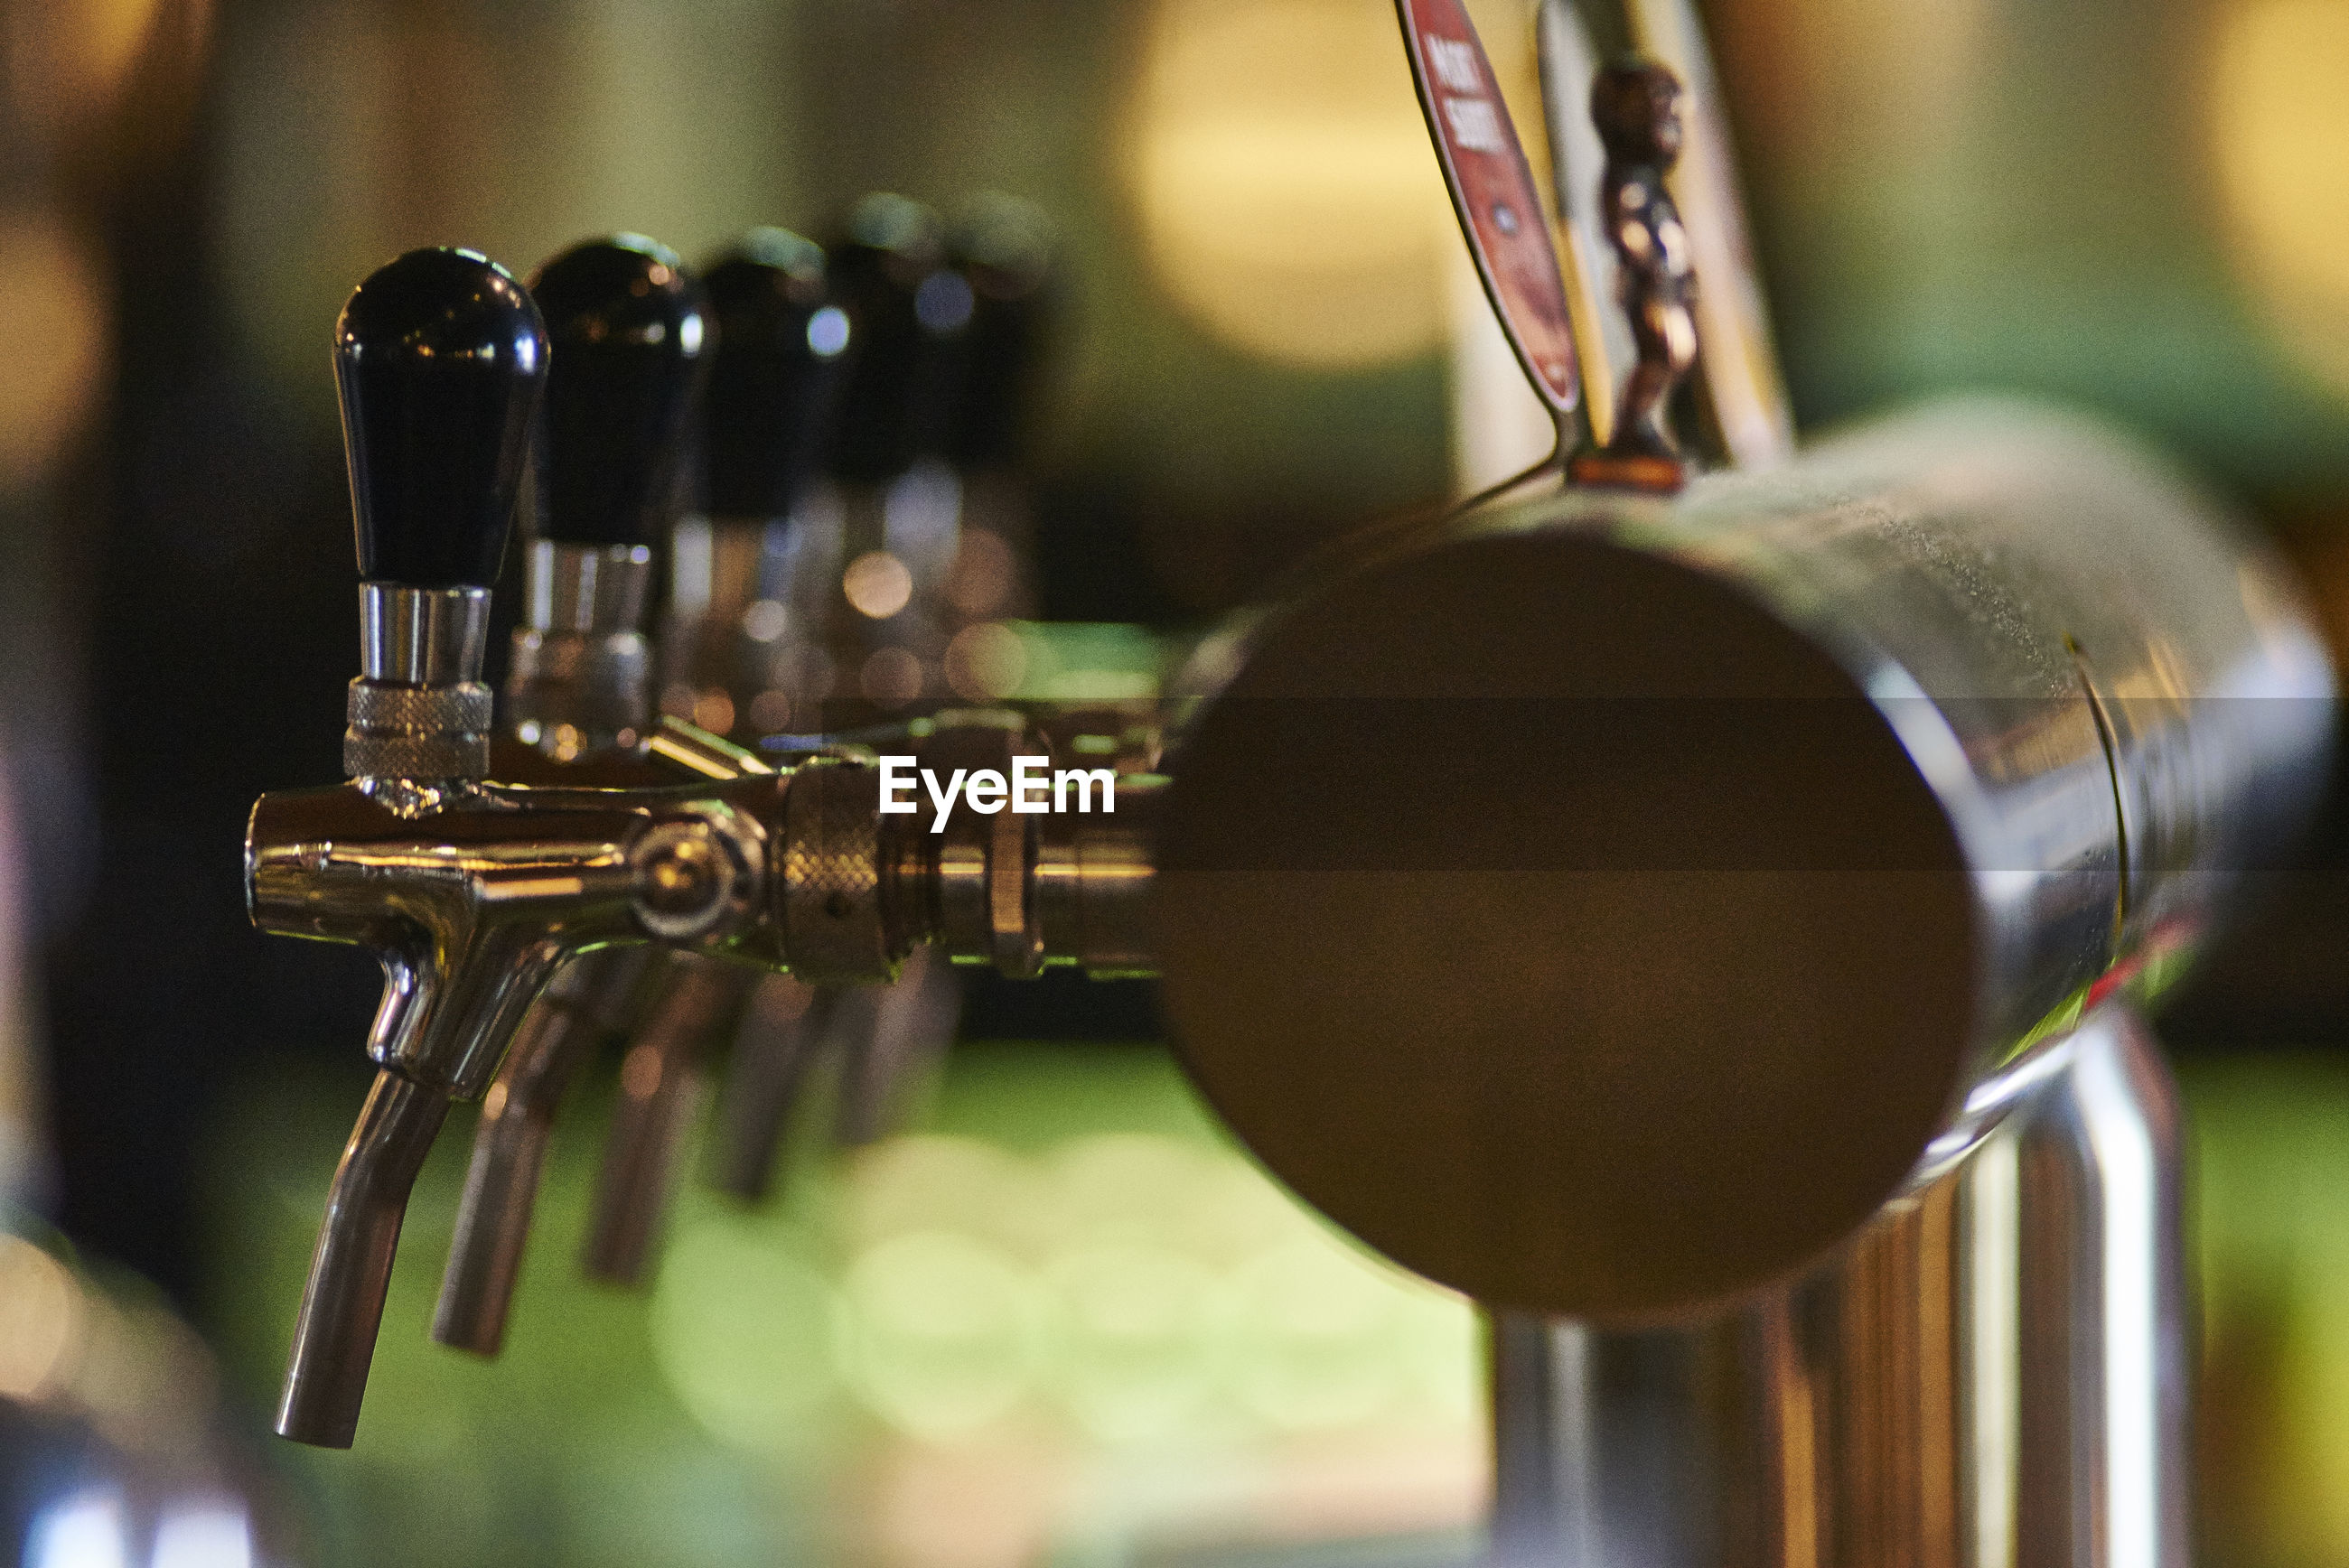 metal, indoors, close-up, focus on foreground, no people, beer tap, music, craft beer, brewery, musical instrument, day